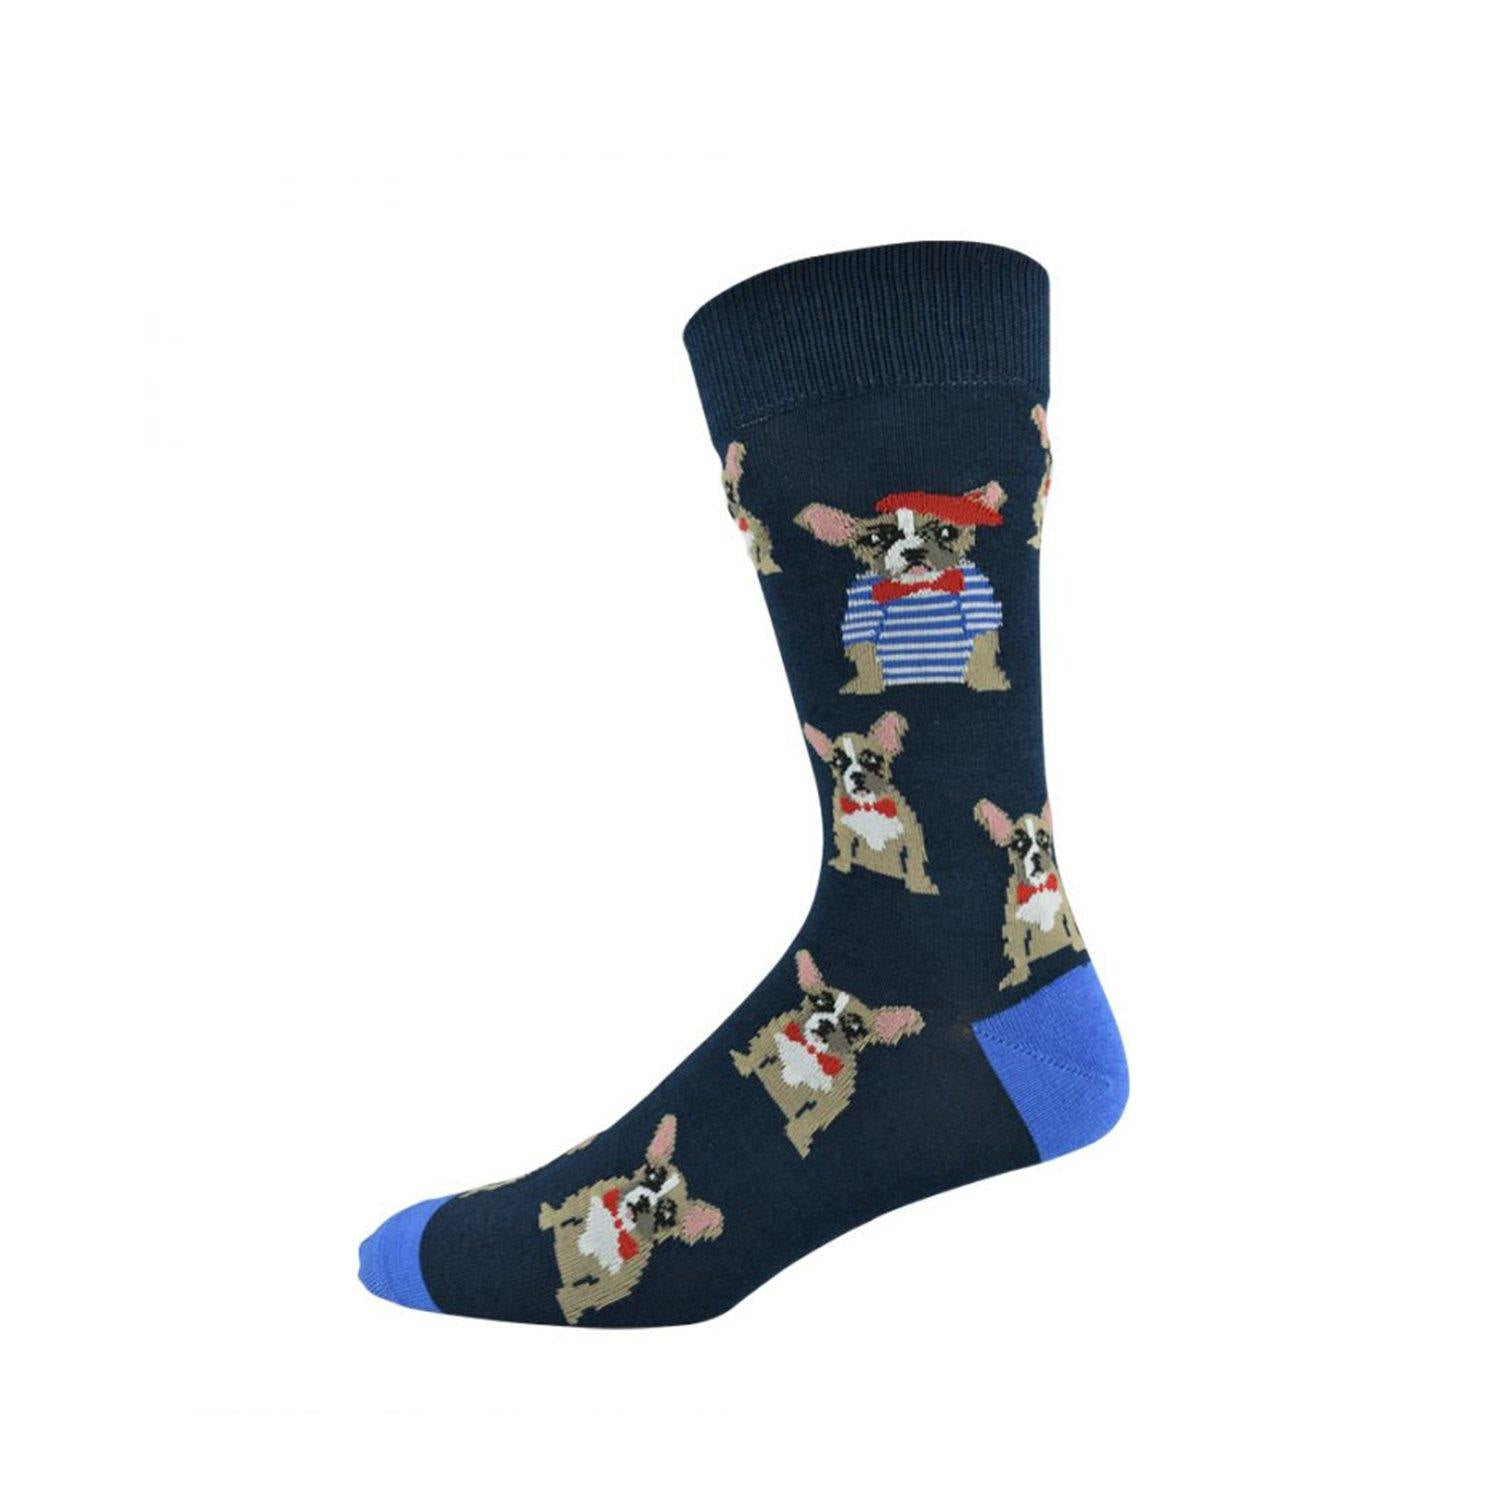 Bamboozld Men's Bamboo Socks - Frenchy